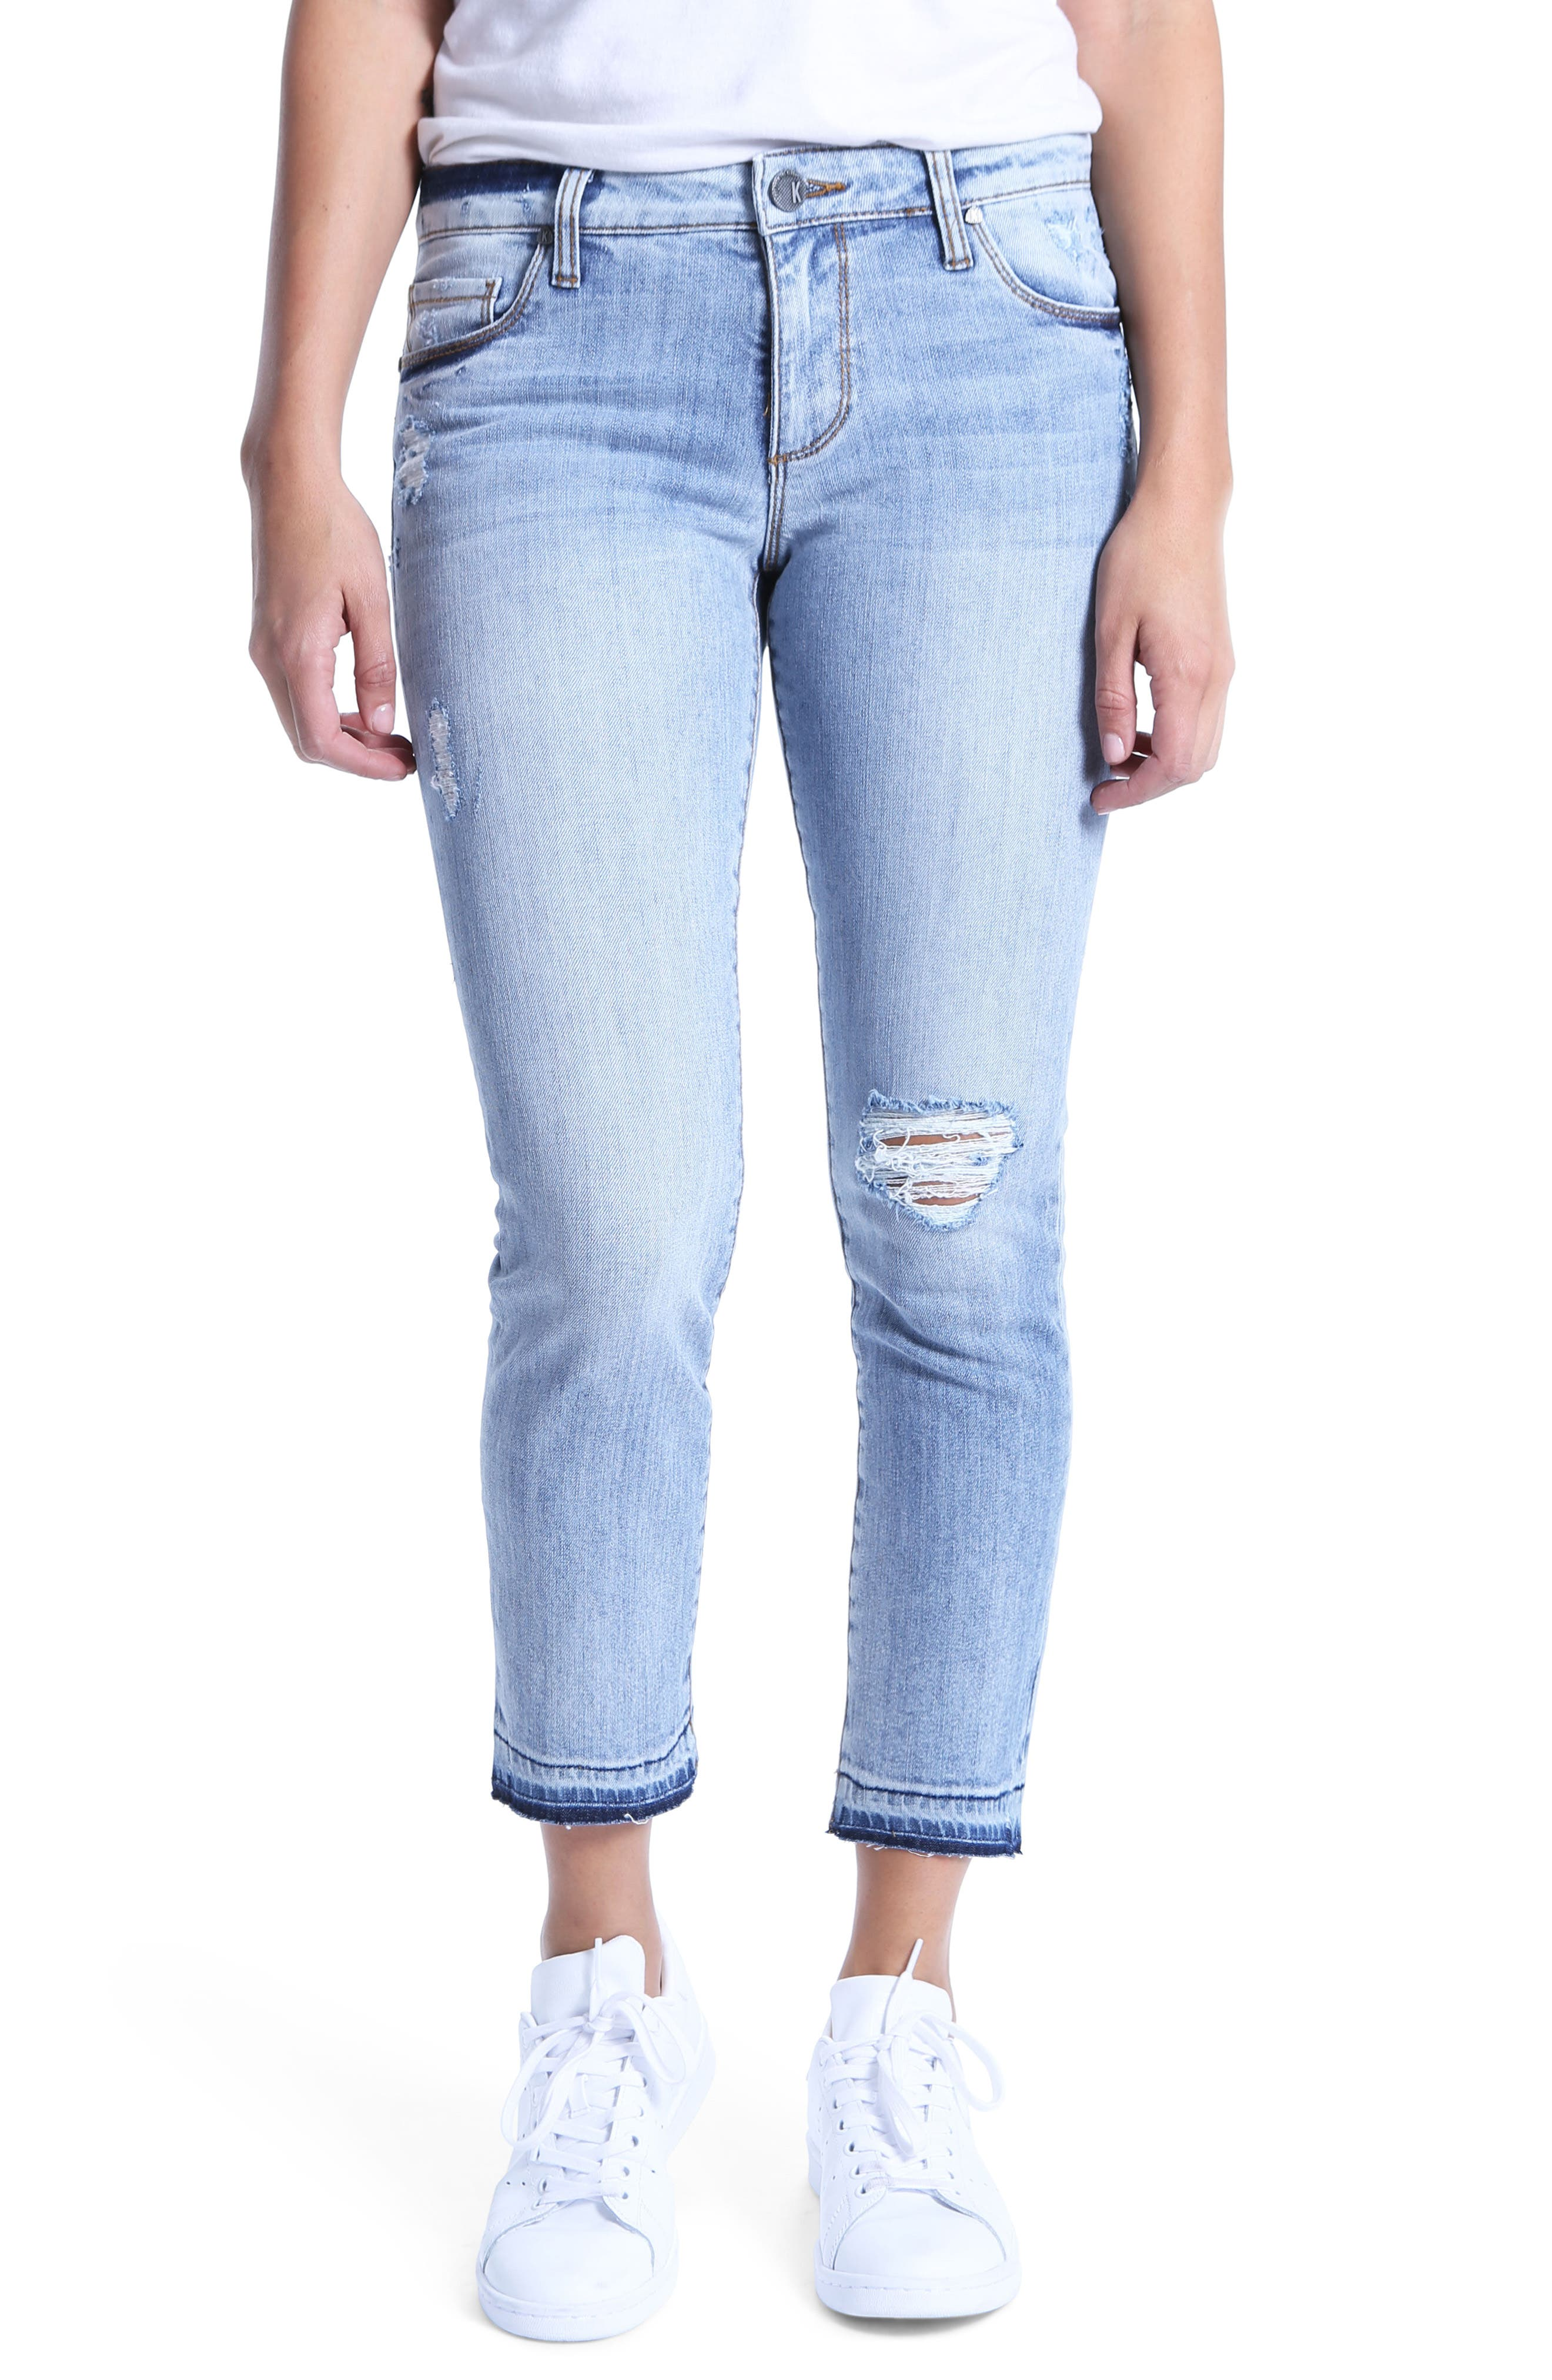 Reese Ripped Ankle Jeans,                             Main thumbnail 1, color,                             431